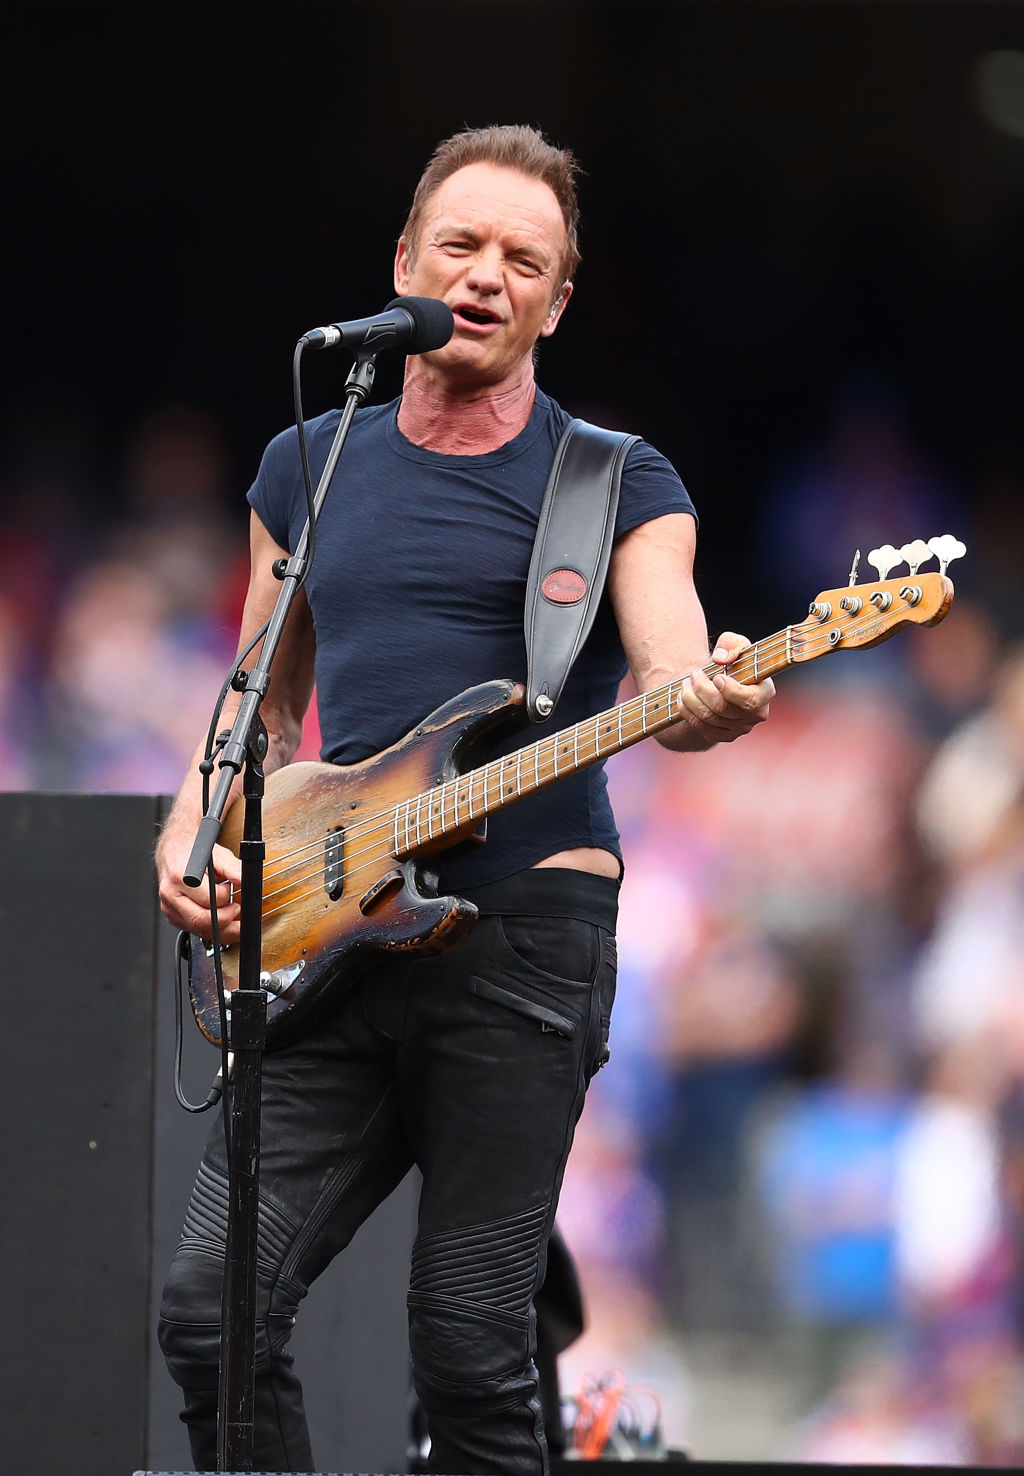 MELBOURNE, AUSTRALIA - OCTOBER 01:    Sting performs during the 2016 Toyota AFL Grand Final match between the Sydney Swans and the Western Bulldogs at the Melbourne Cricket Ground on October 1, 2016 in Melbourne, Australia.  (Photo by Scott Barbour/Fairfax Media) *** Local Caption *** Sting